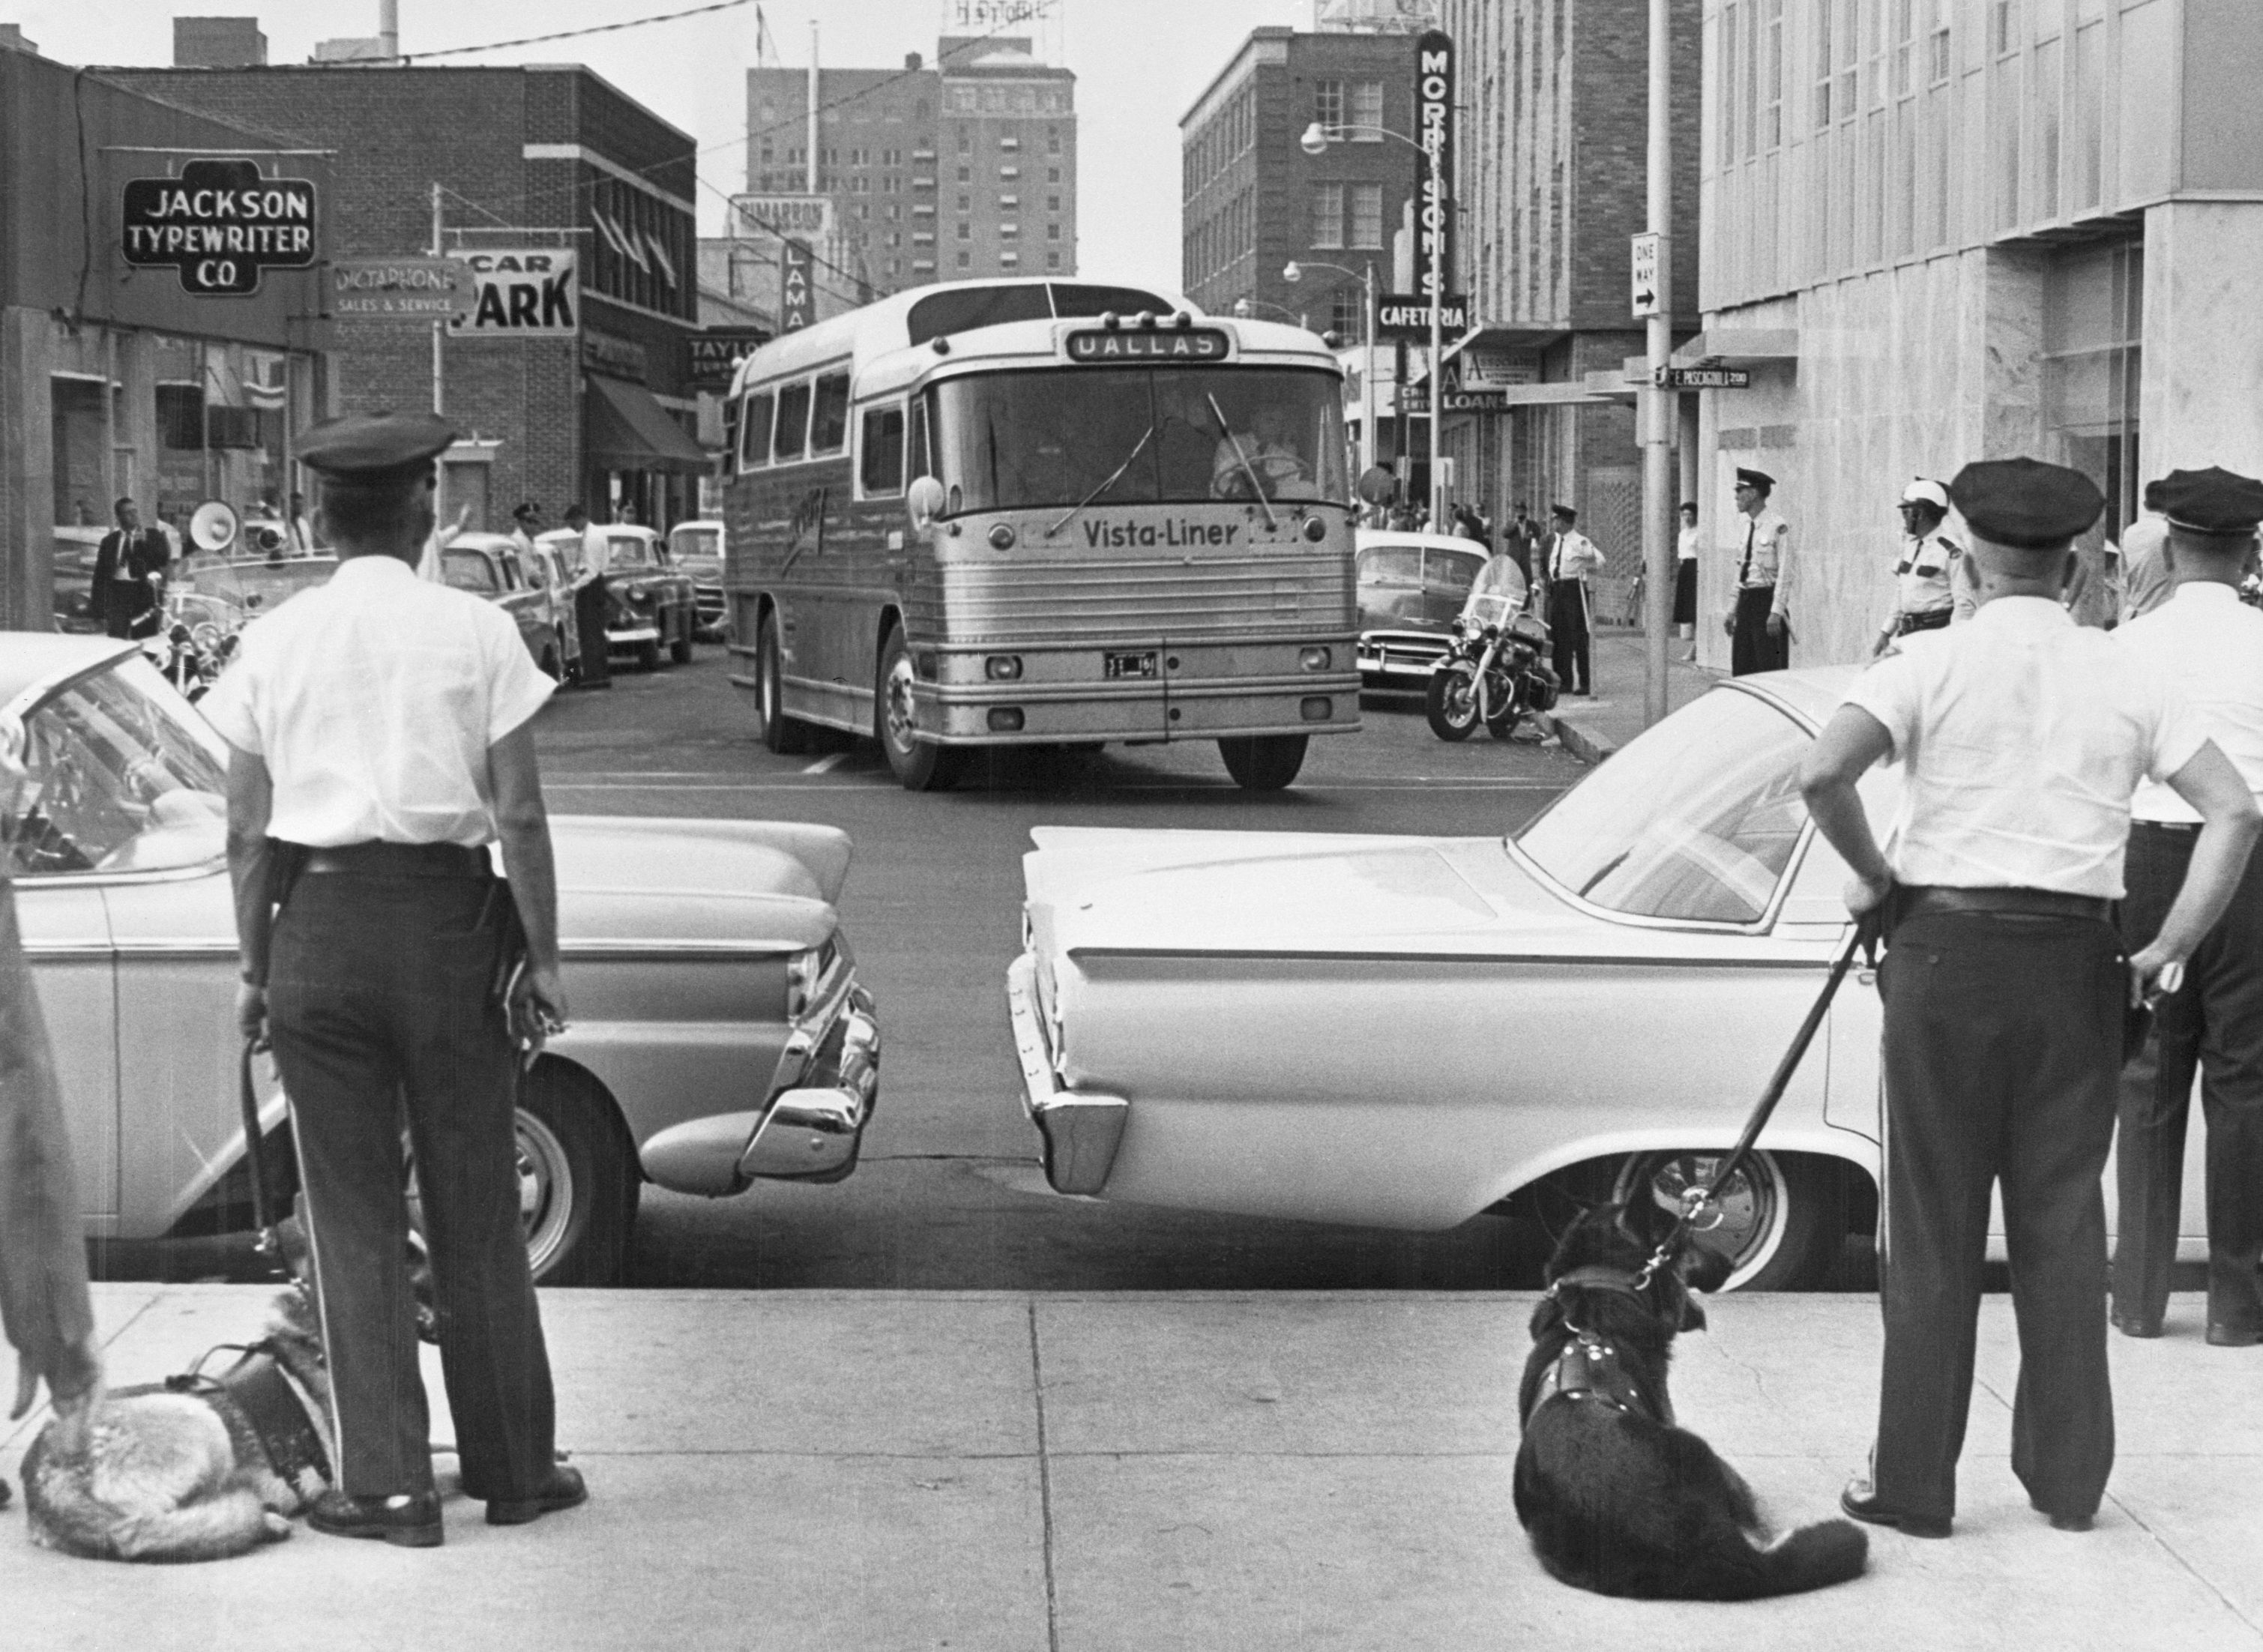 Freedom Riders Arriving in Jackson, Mississippi to a group of policemen and their dogs.